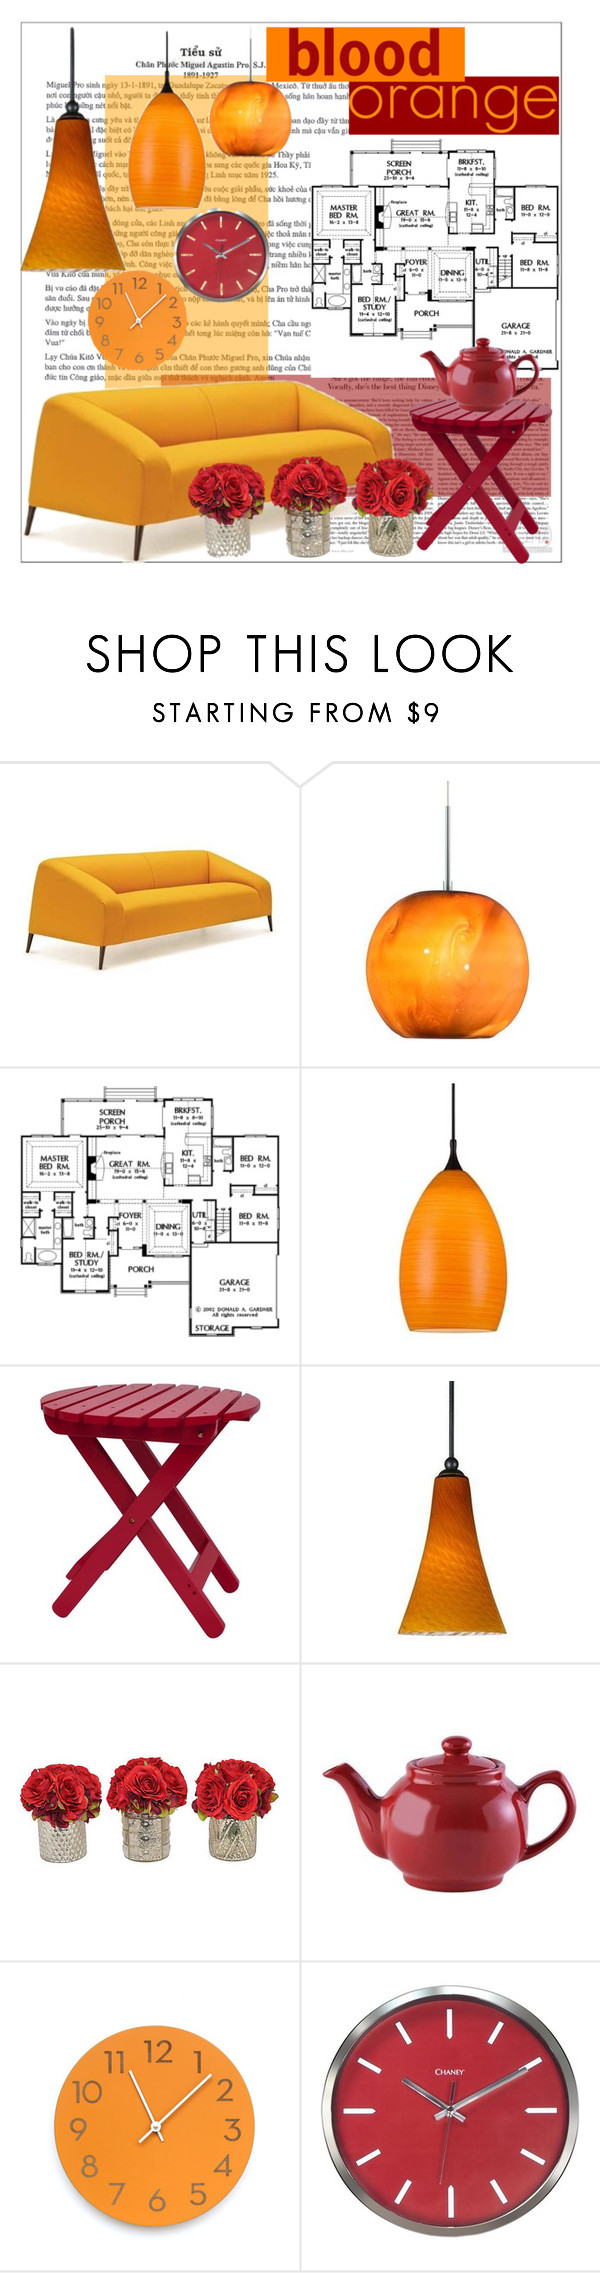 """""""Main Color: Blood Orange"""" by gretams ❤ liked on Polyvore featuring interior, interiors, interior design, home, home decor, interior decorating, Cal Lighting, Shine Company and Price & Kensington"""